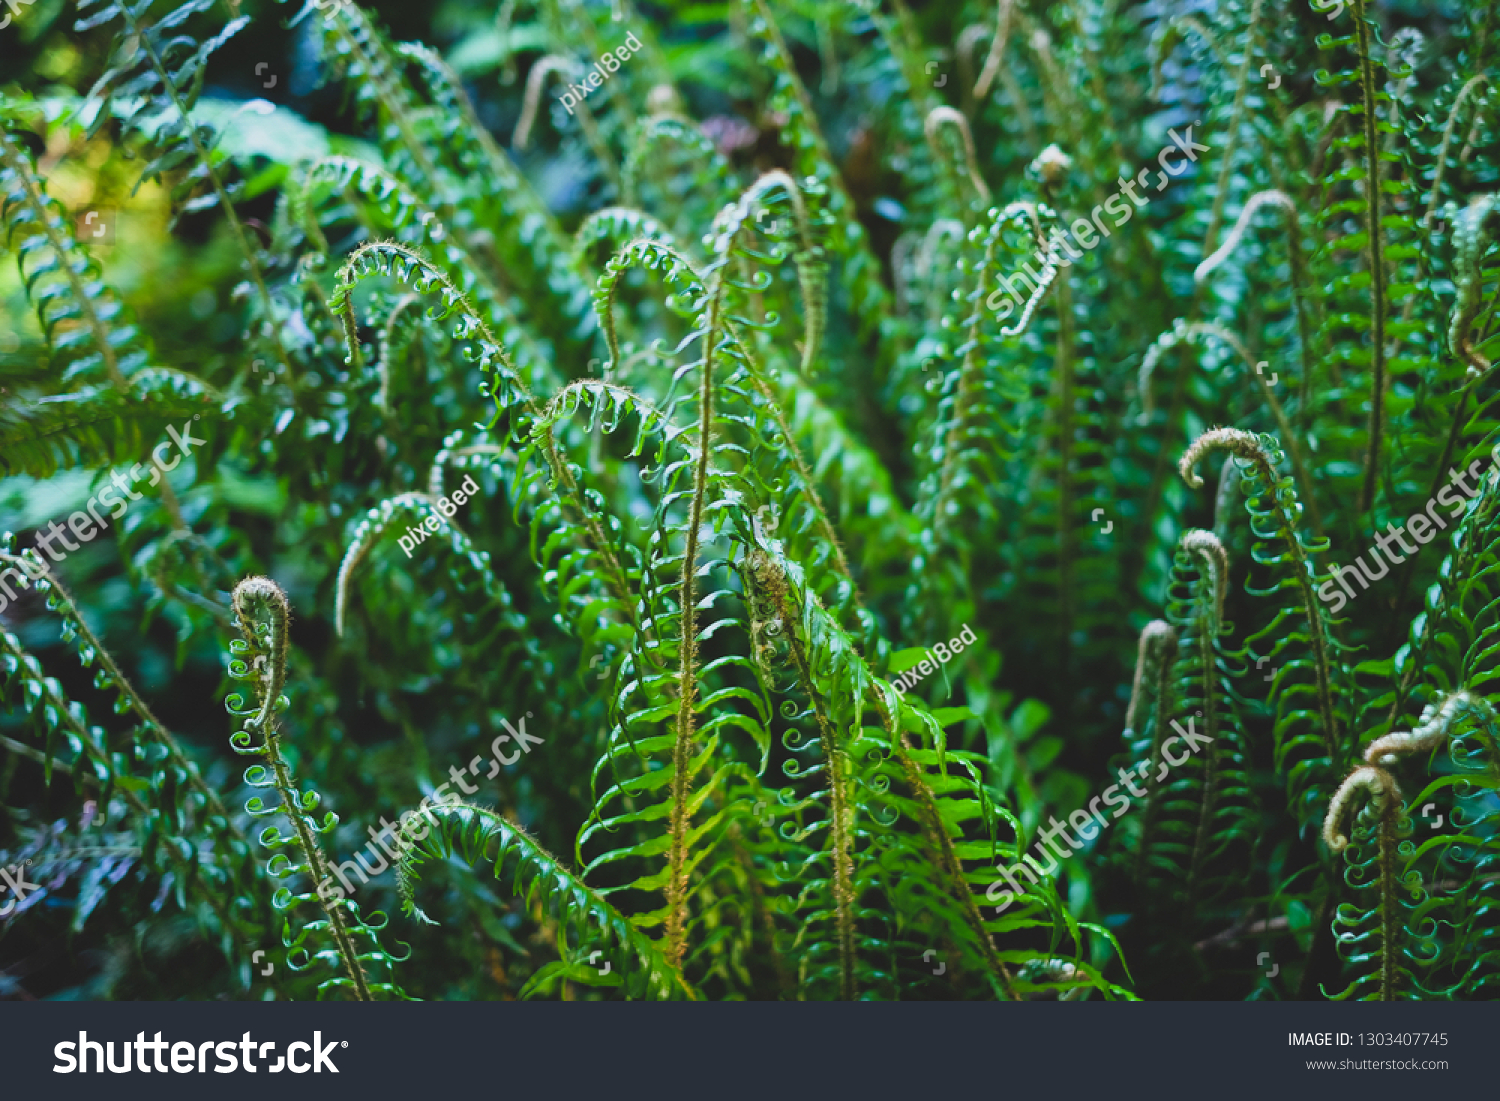 Curling leaves of bright green evergreen fern plants #1303407745